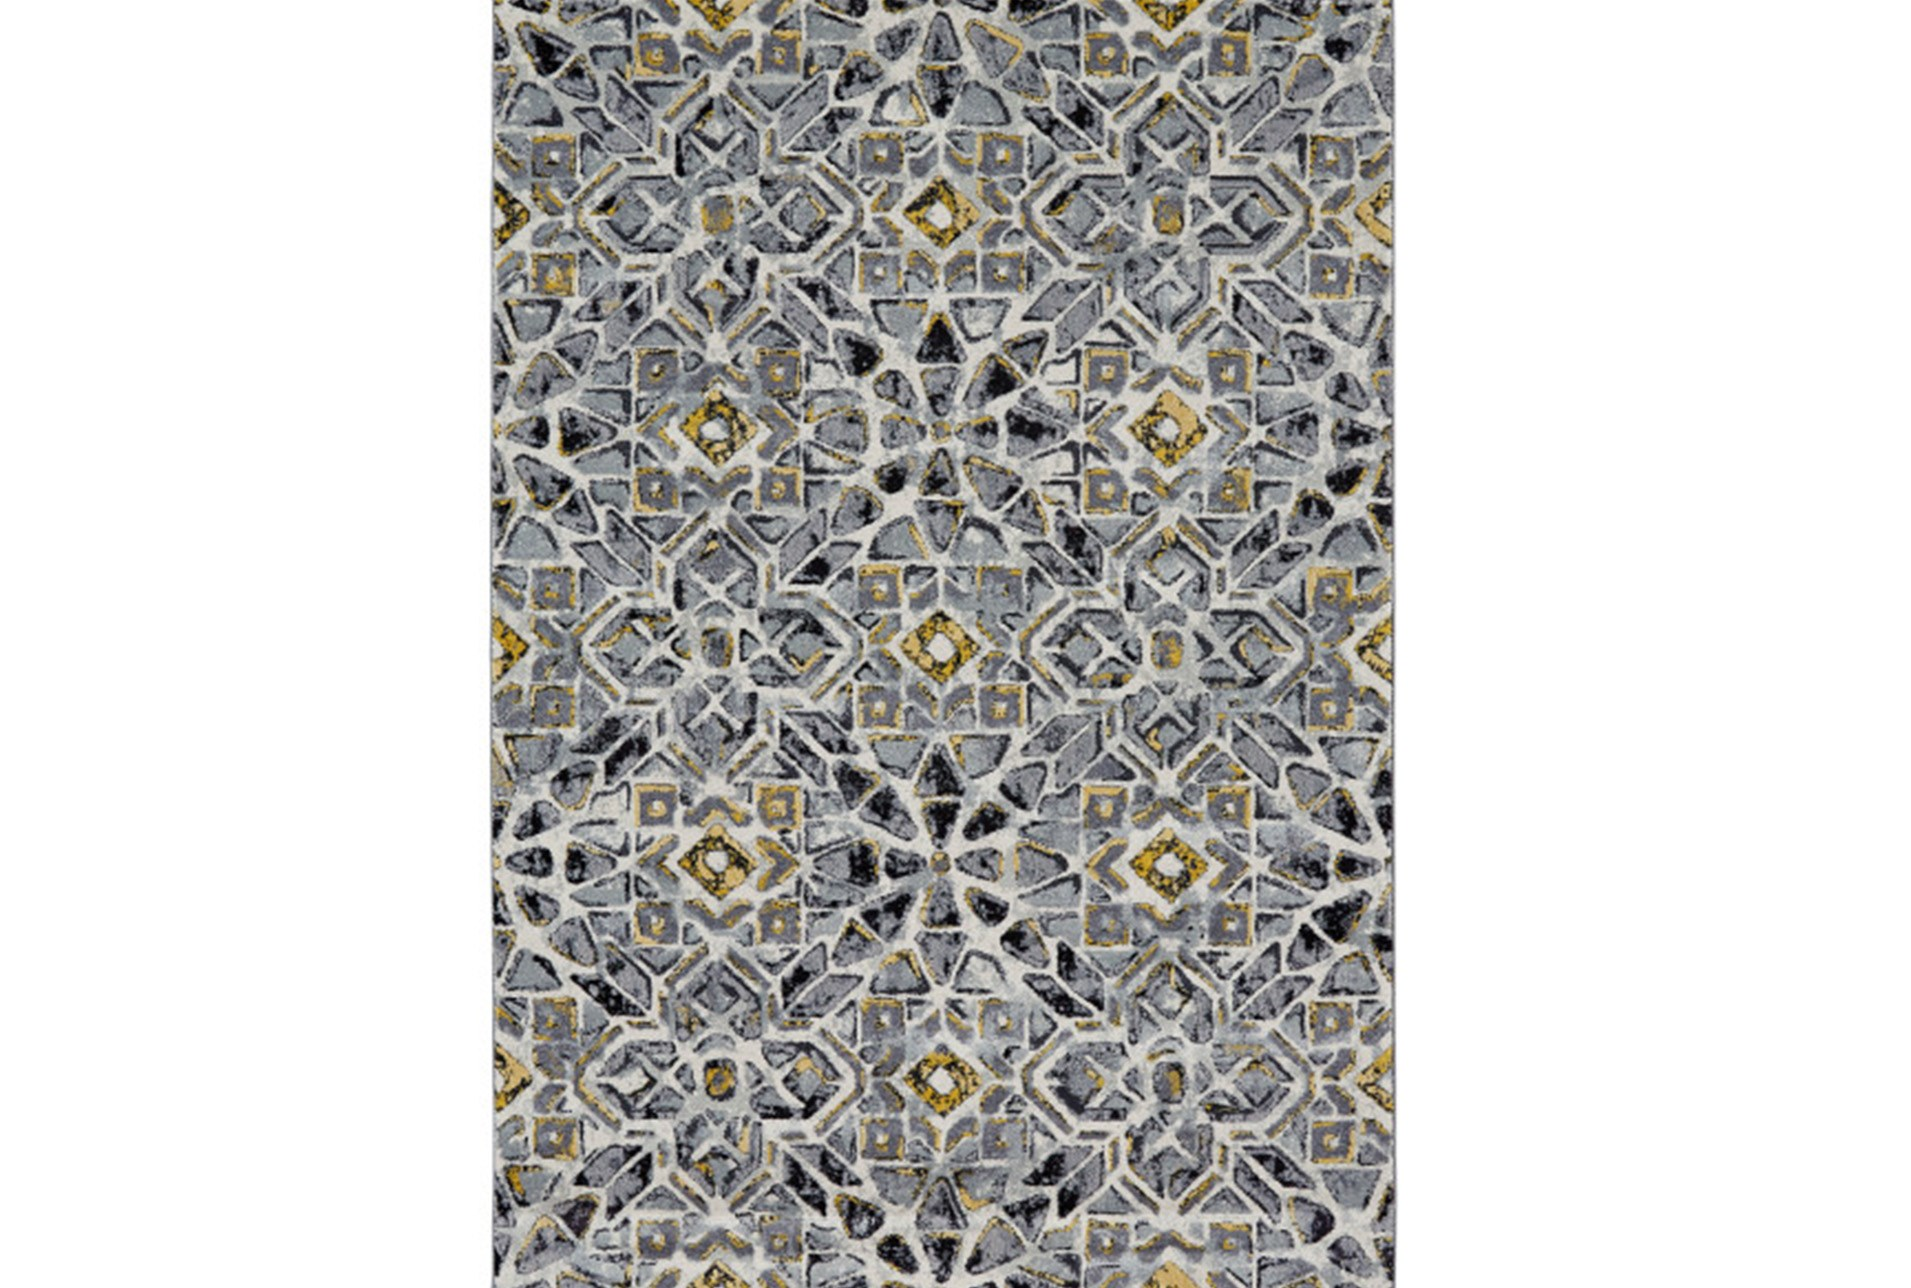 120x158 Rug Grey And Yellow Moroccan Tile Qty 1 Has Been Successfully Added To Your Cart